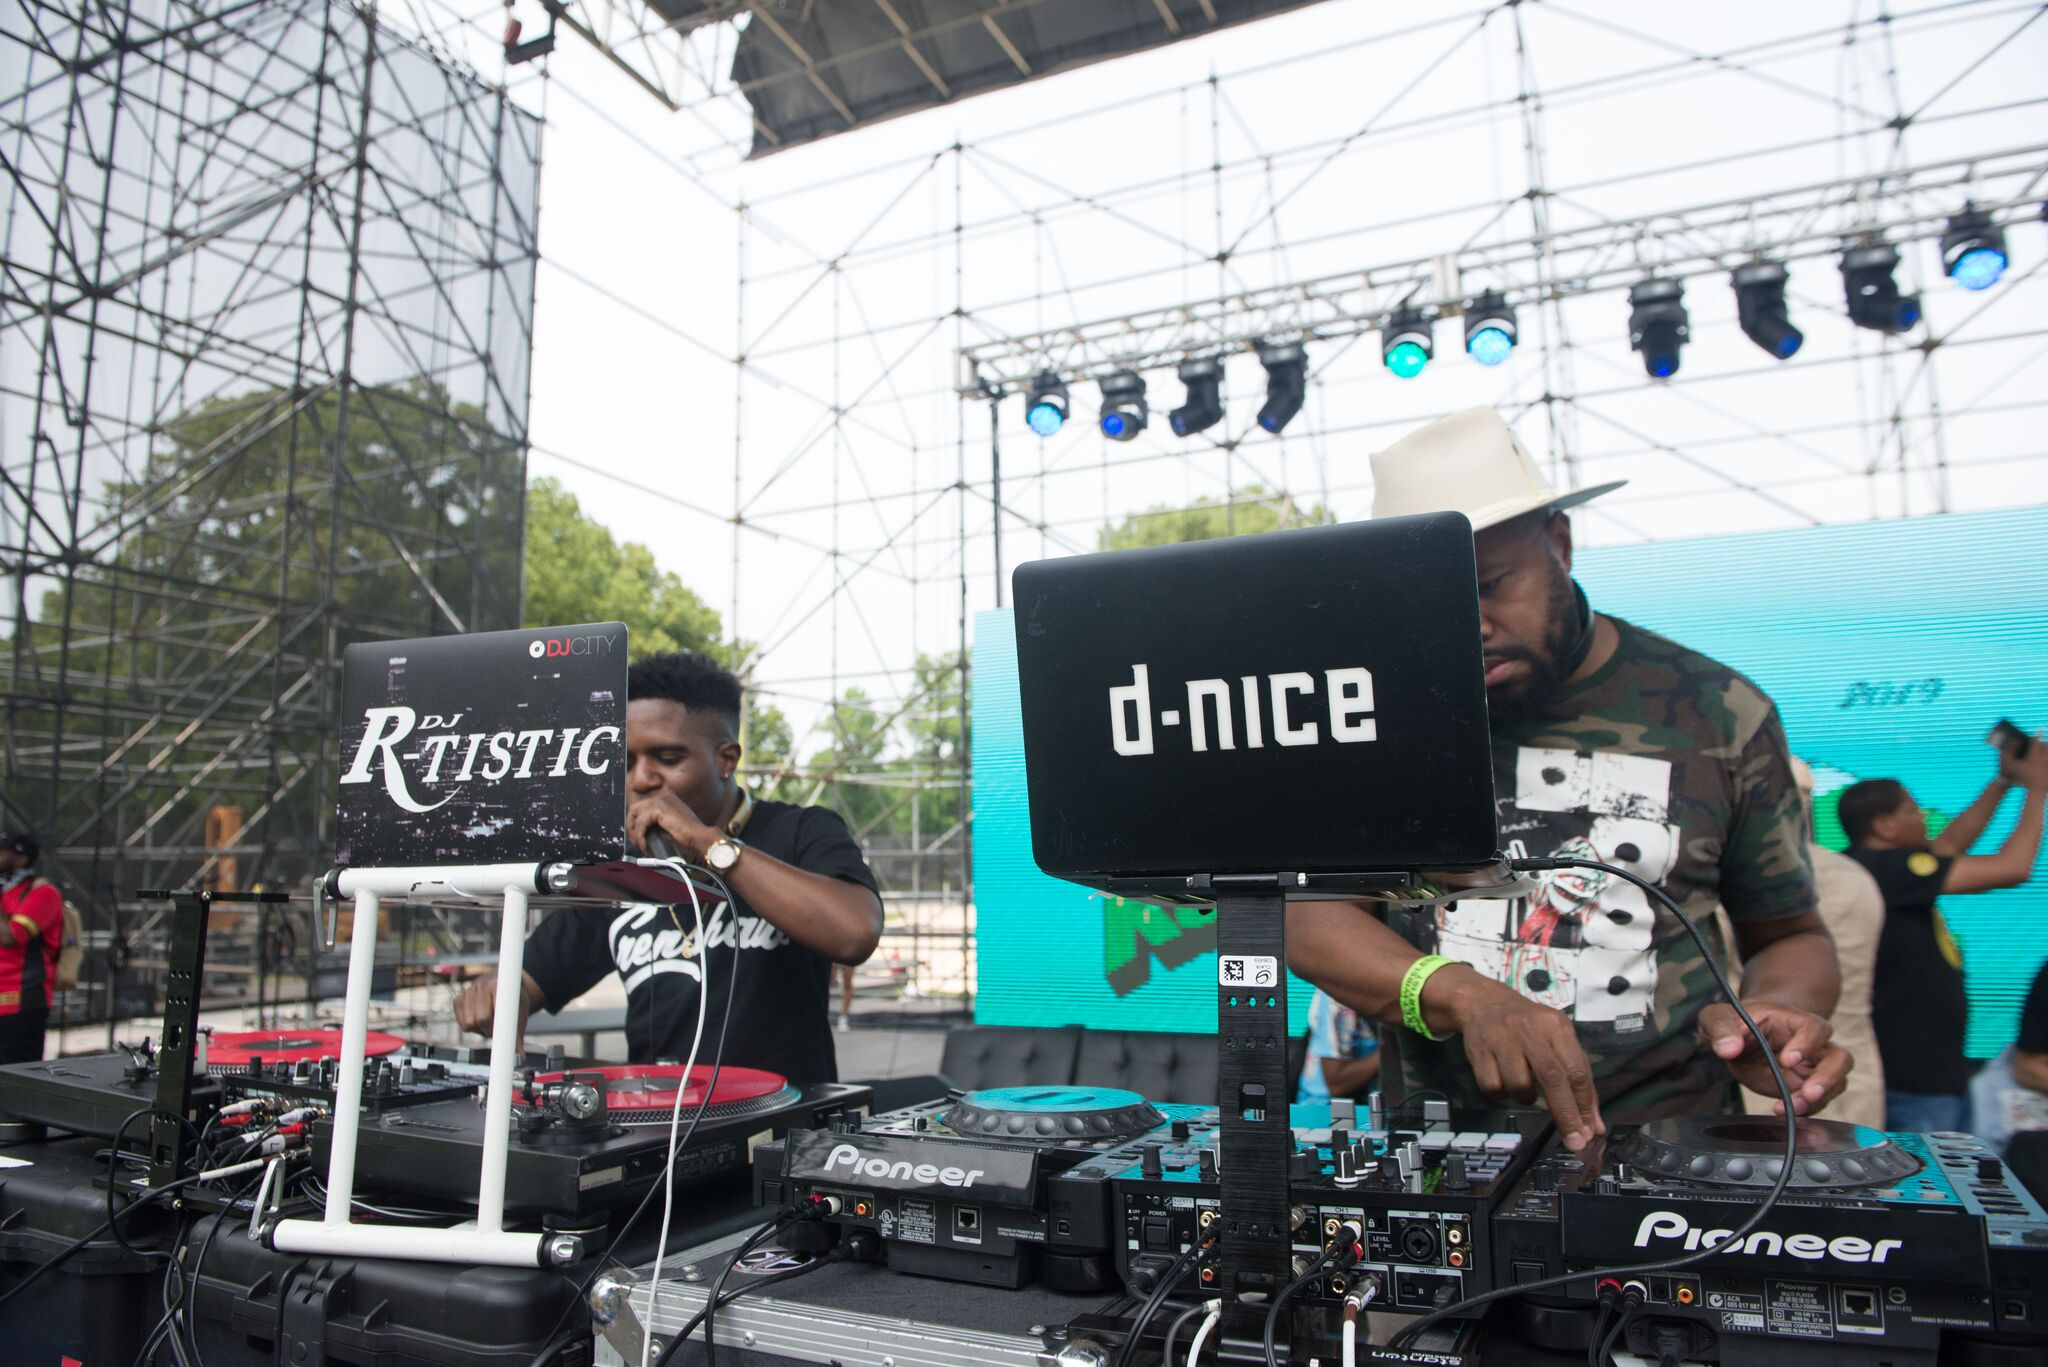 DJ R-Tistic and D-Nice